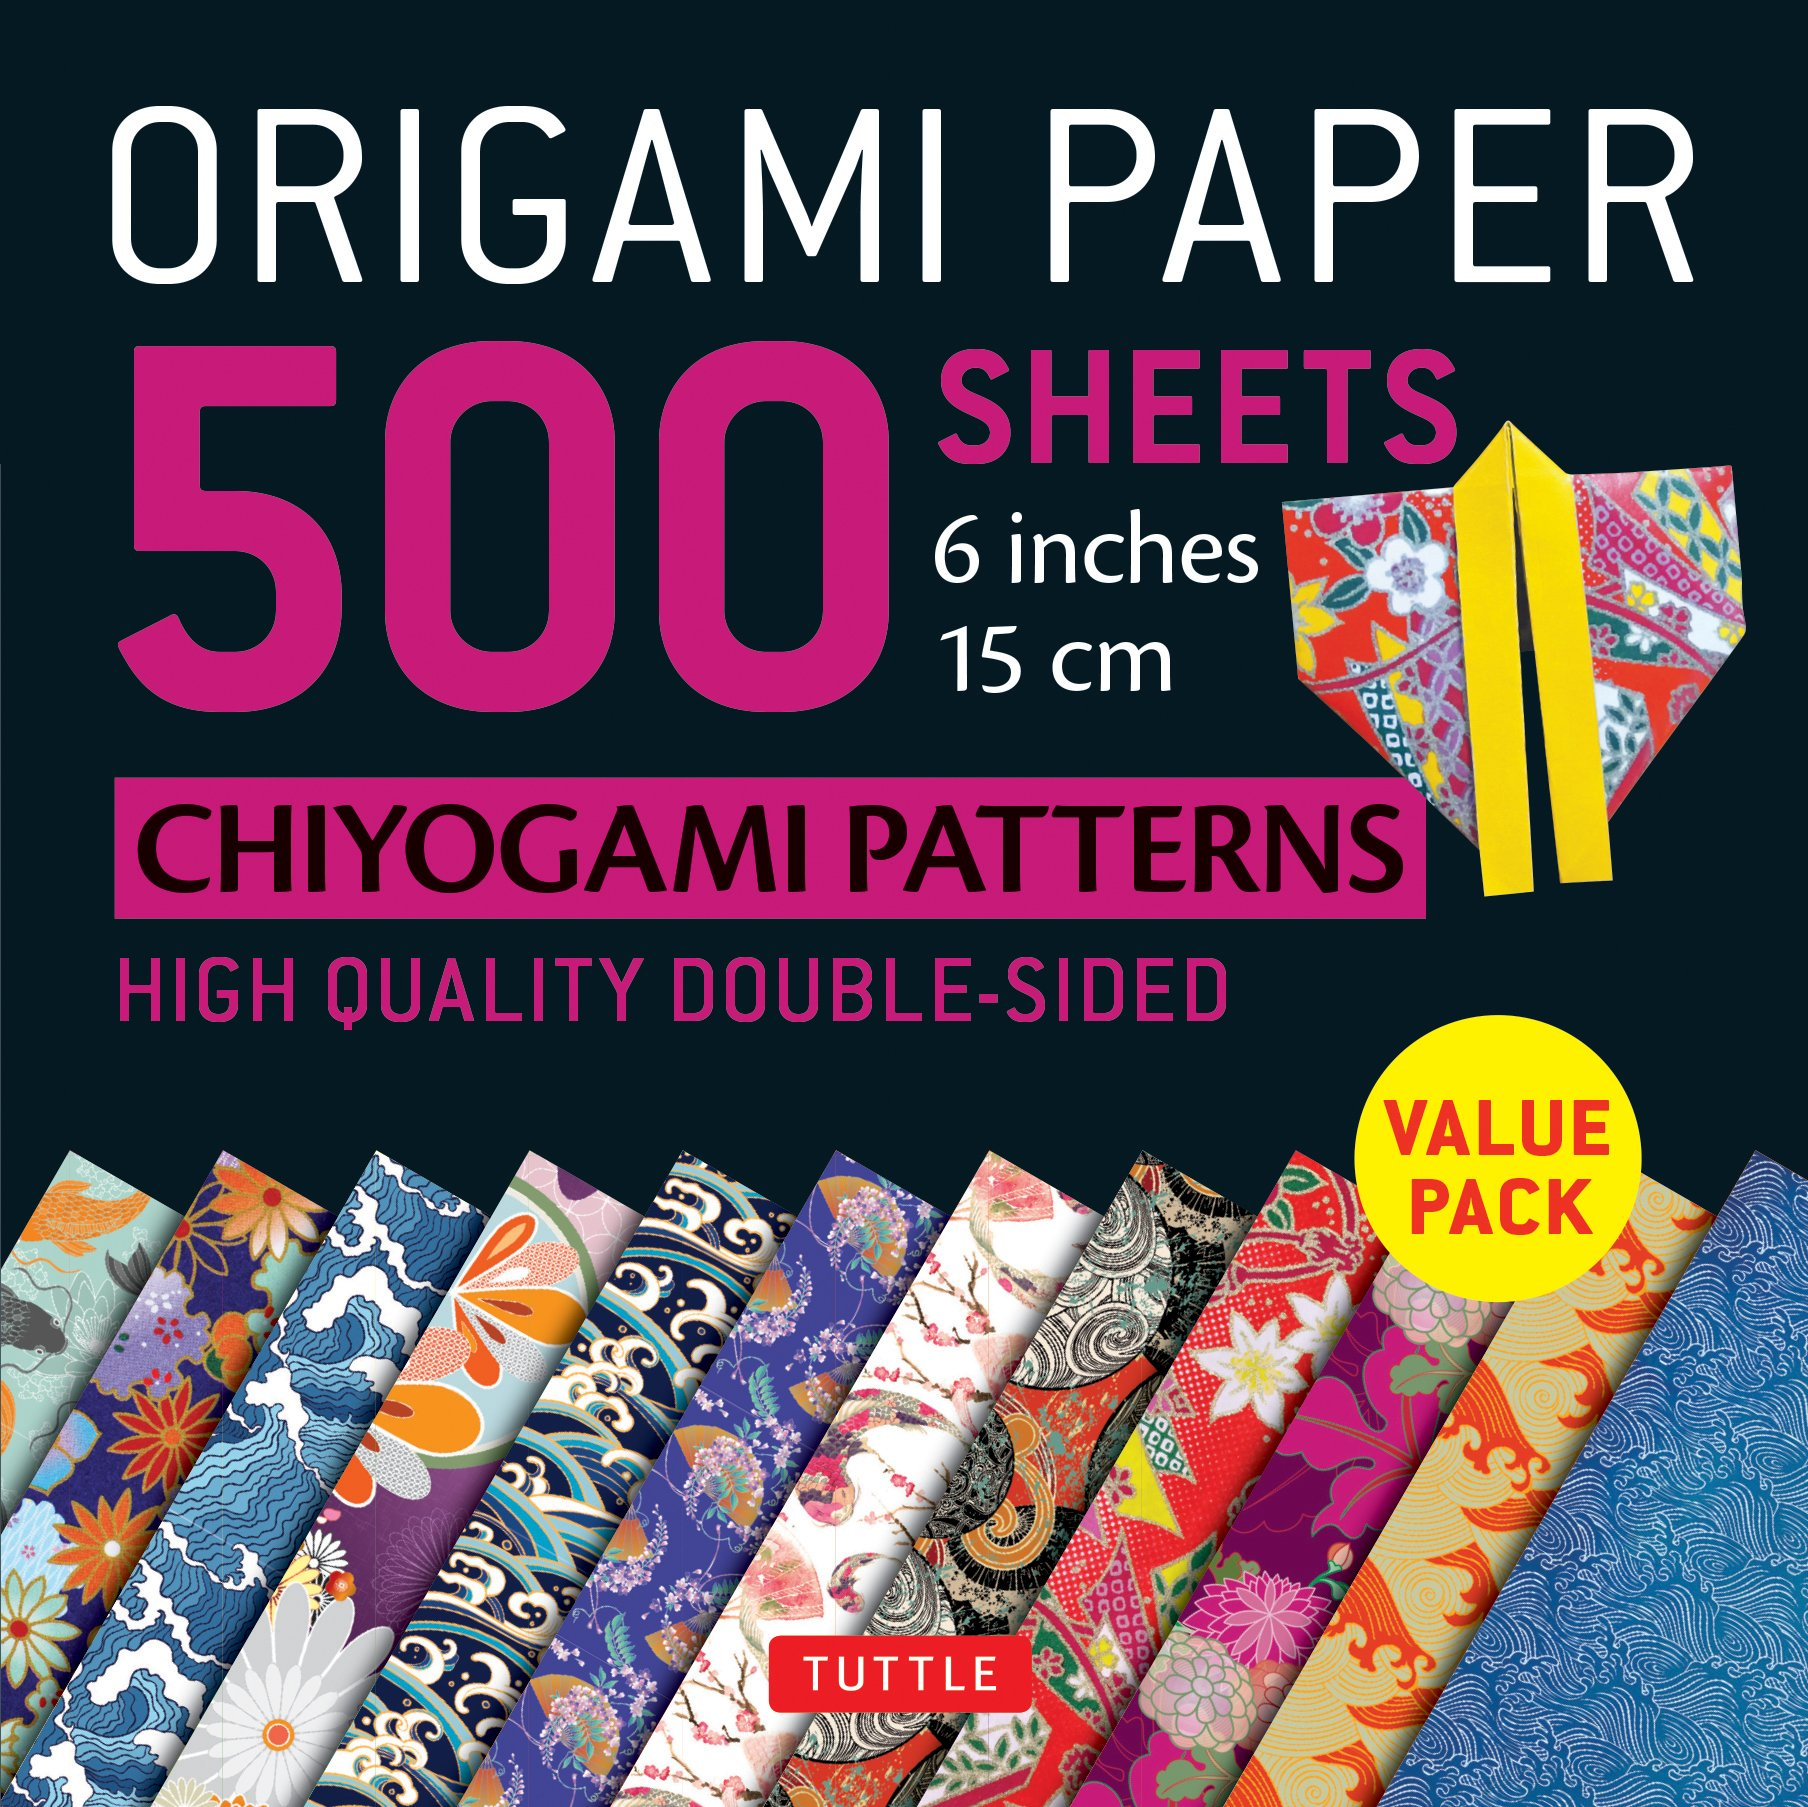 Watercolor 20 sheets of Origami Paper 6 Square Washi Chiyogami Designs of Birds